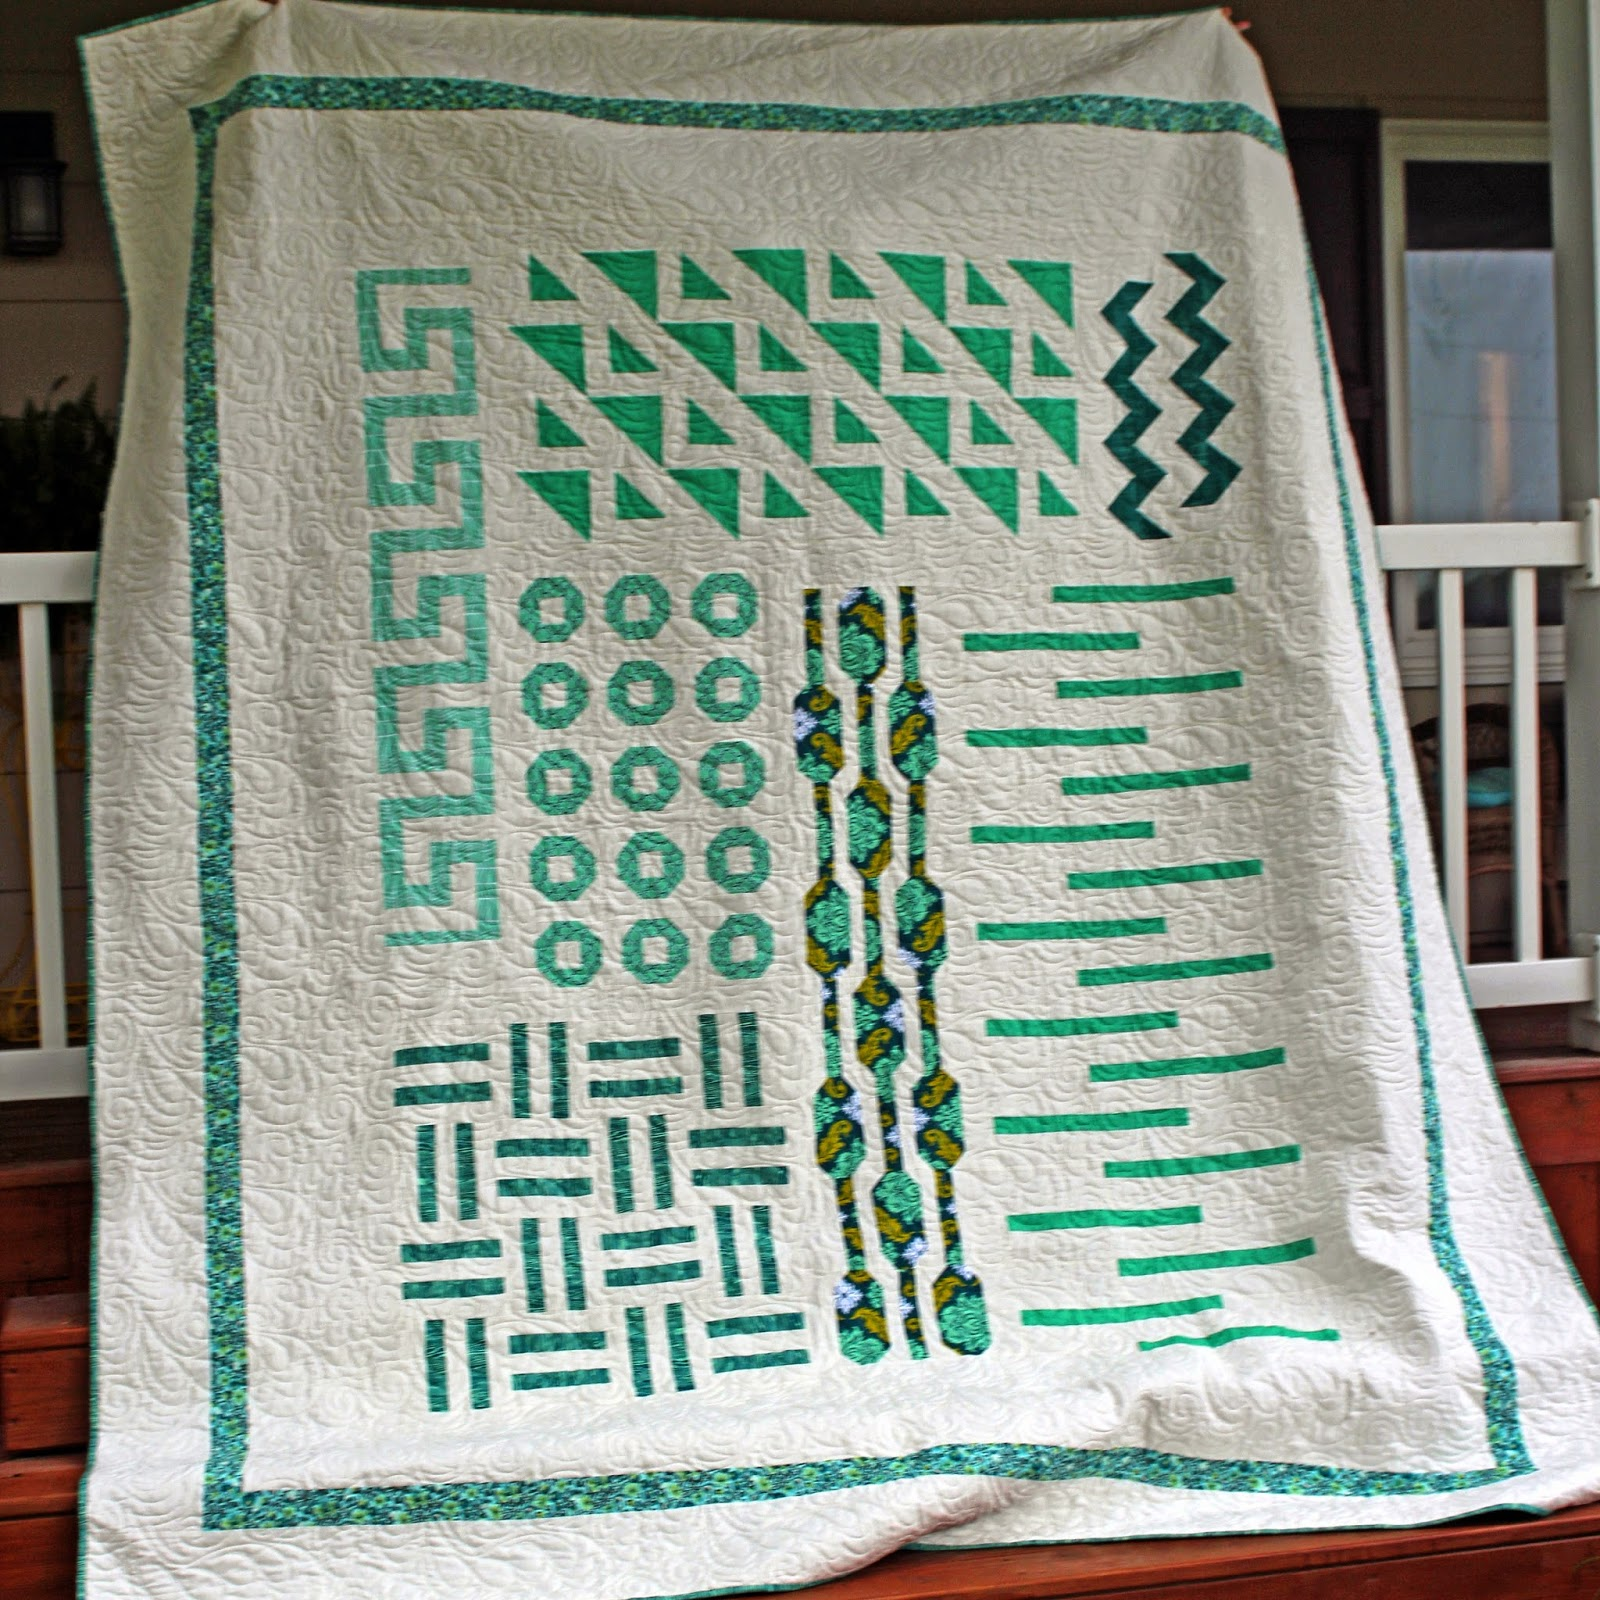 Girls in the Garden - Graphic Mixx quilt using shades of green